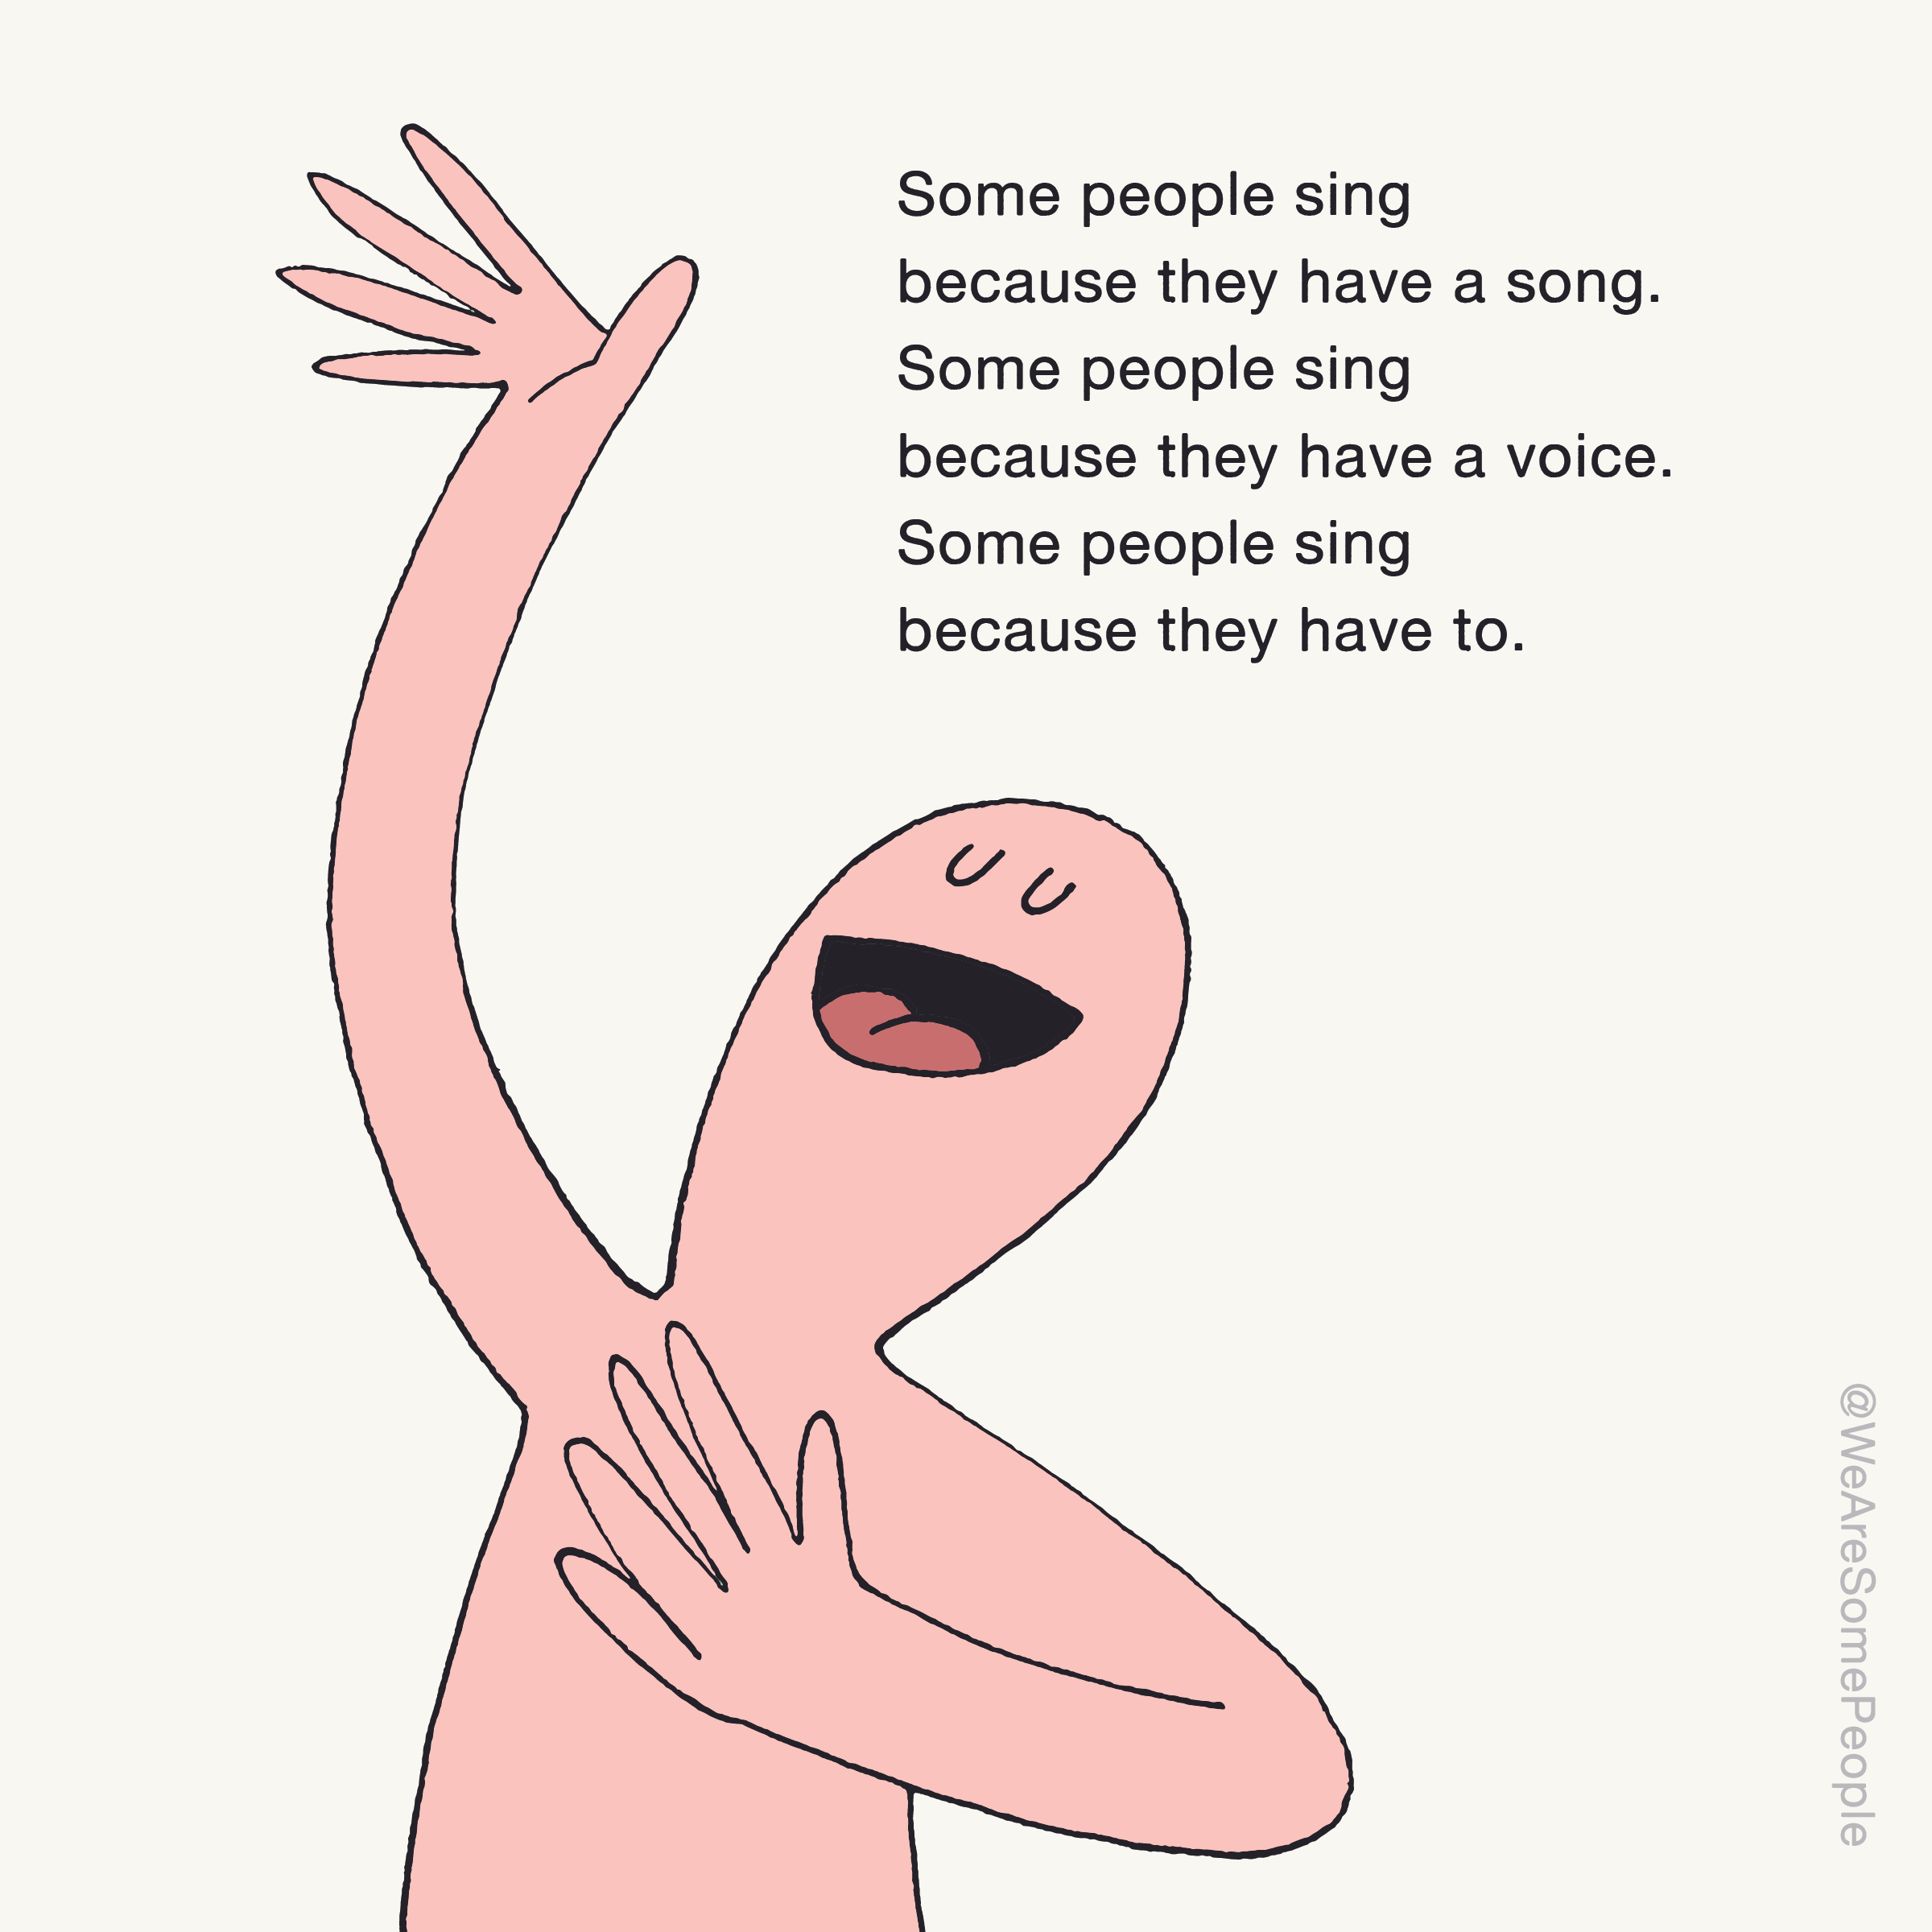 We_Are_Some_People-01-08-CDR.png